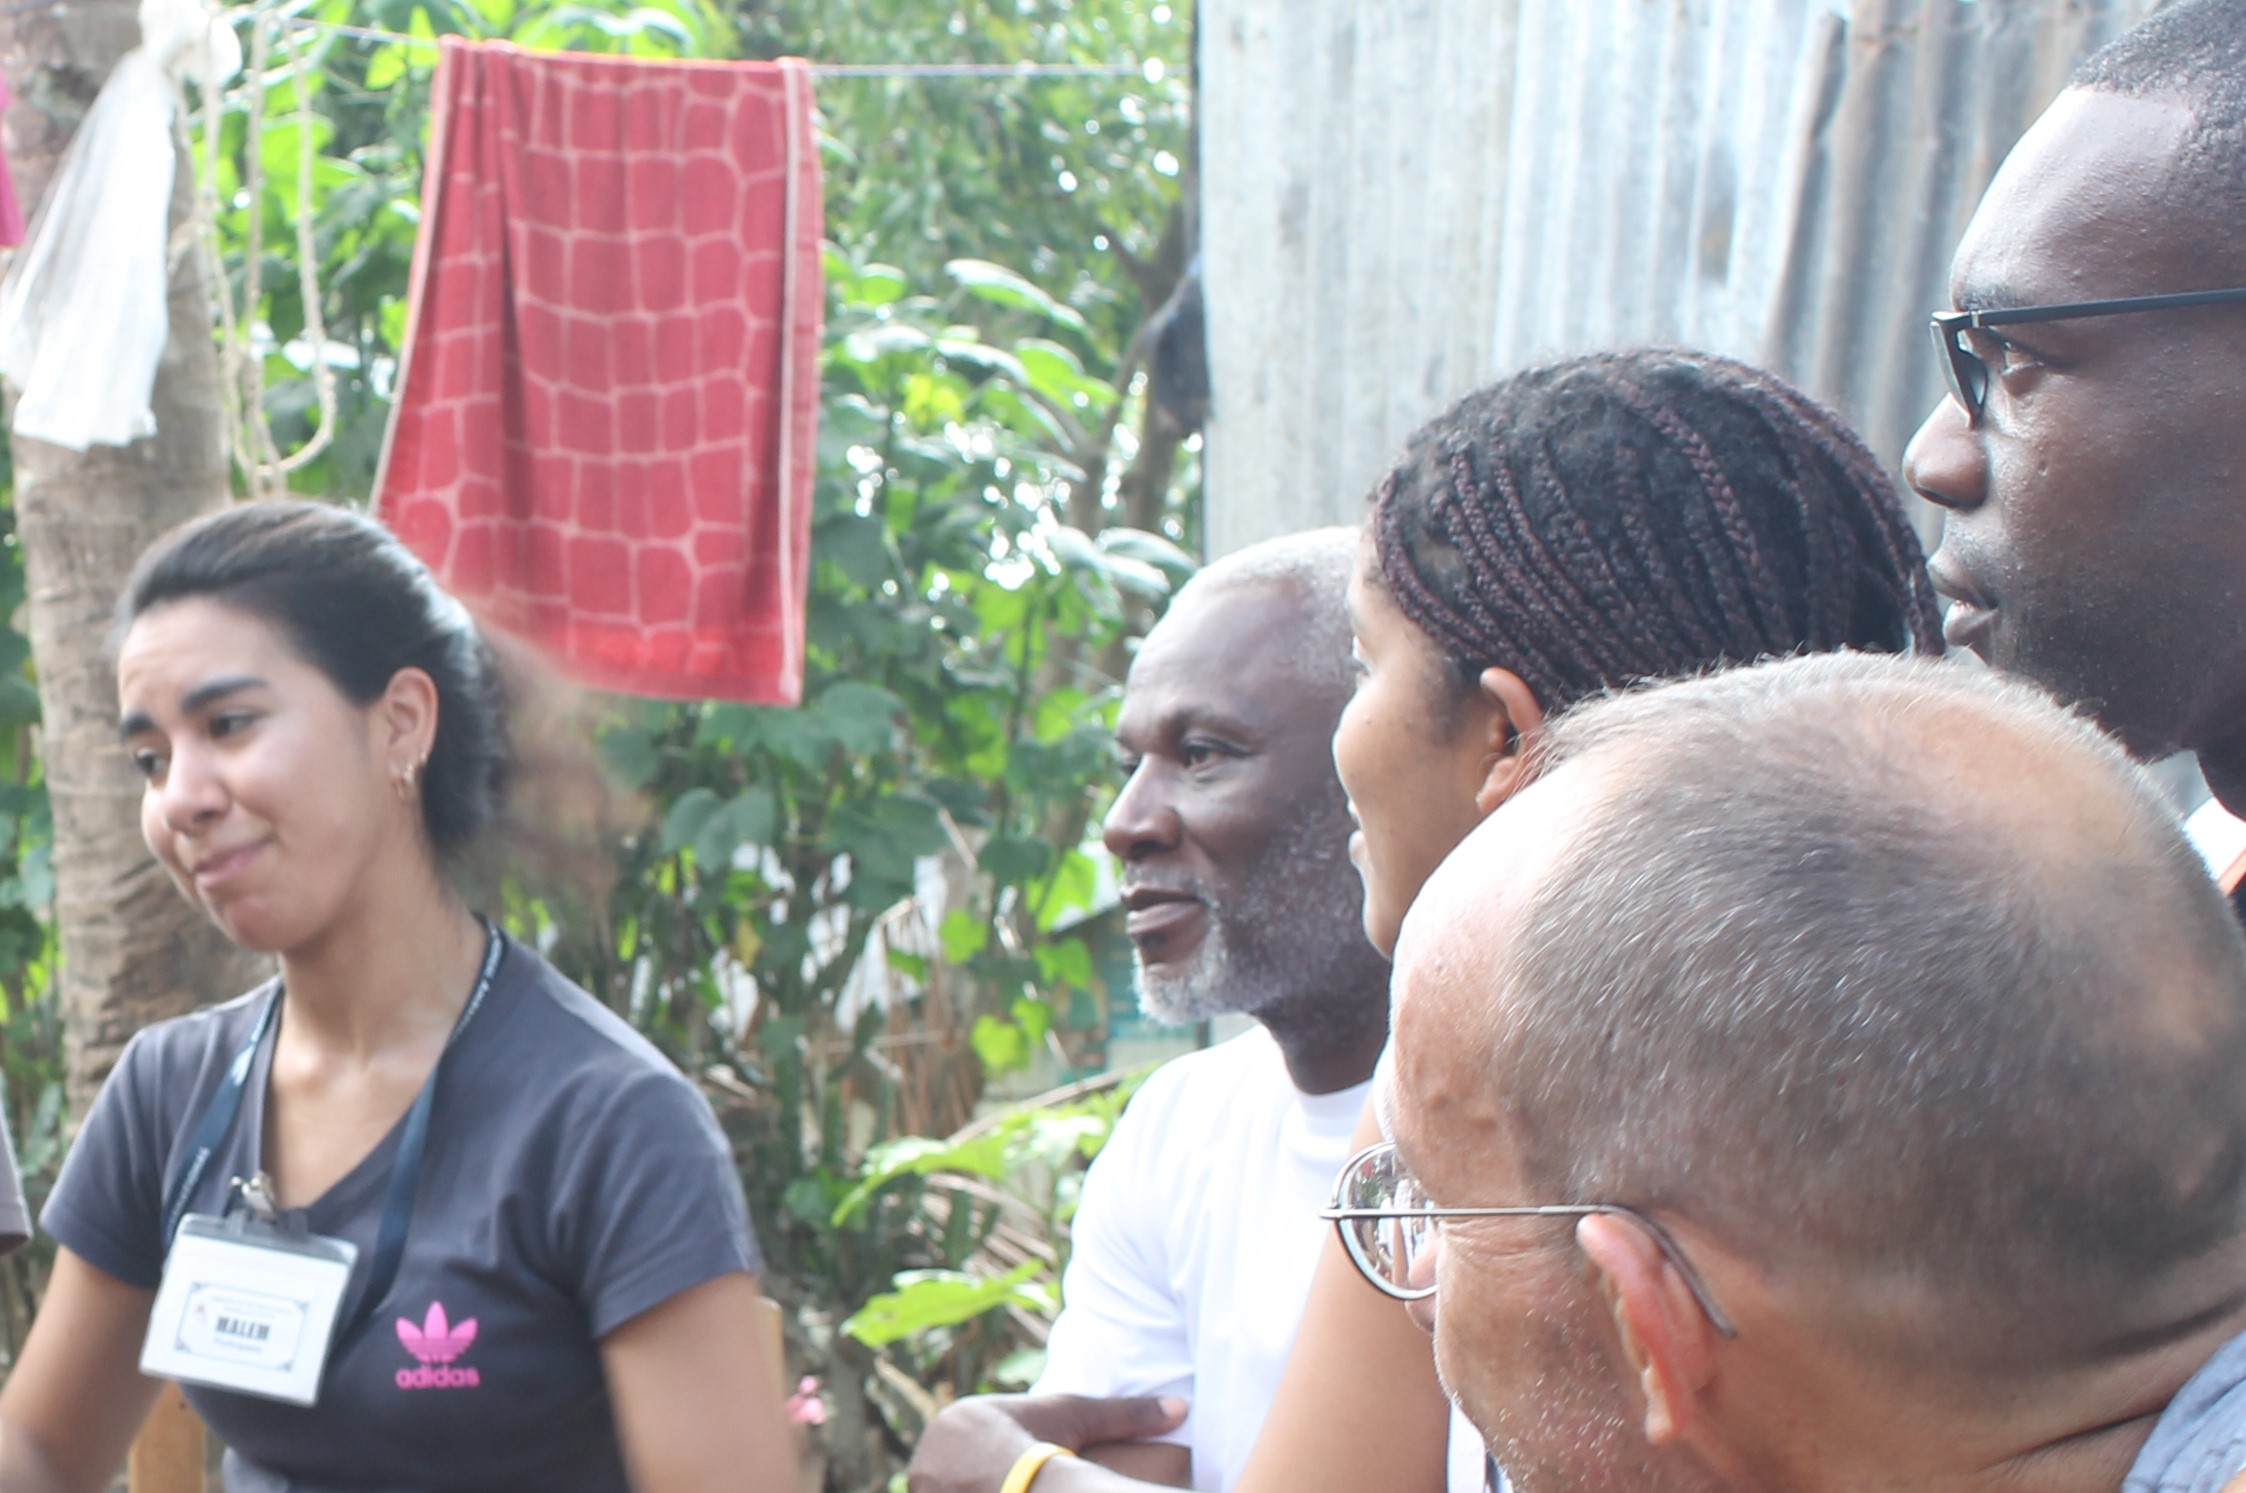 Juan Batista (far right, behind Mark's head) and Bellanira Matos (just left of Juan) watching a fellow CHE student from Chile (far left) carry out a health lesson with a group of children who are part of a CHE Children's Club in Mombin Crochu. Our host and director for the Haiti CHE program, Osse Saint-Juste, sits between Bellanira and the Chilean CHE student.